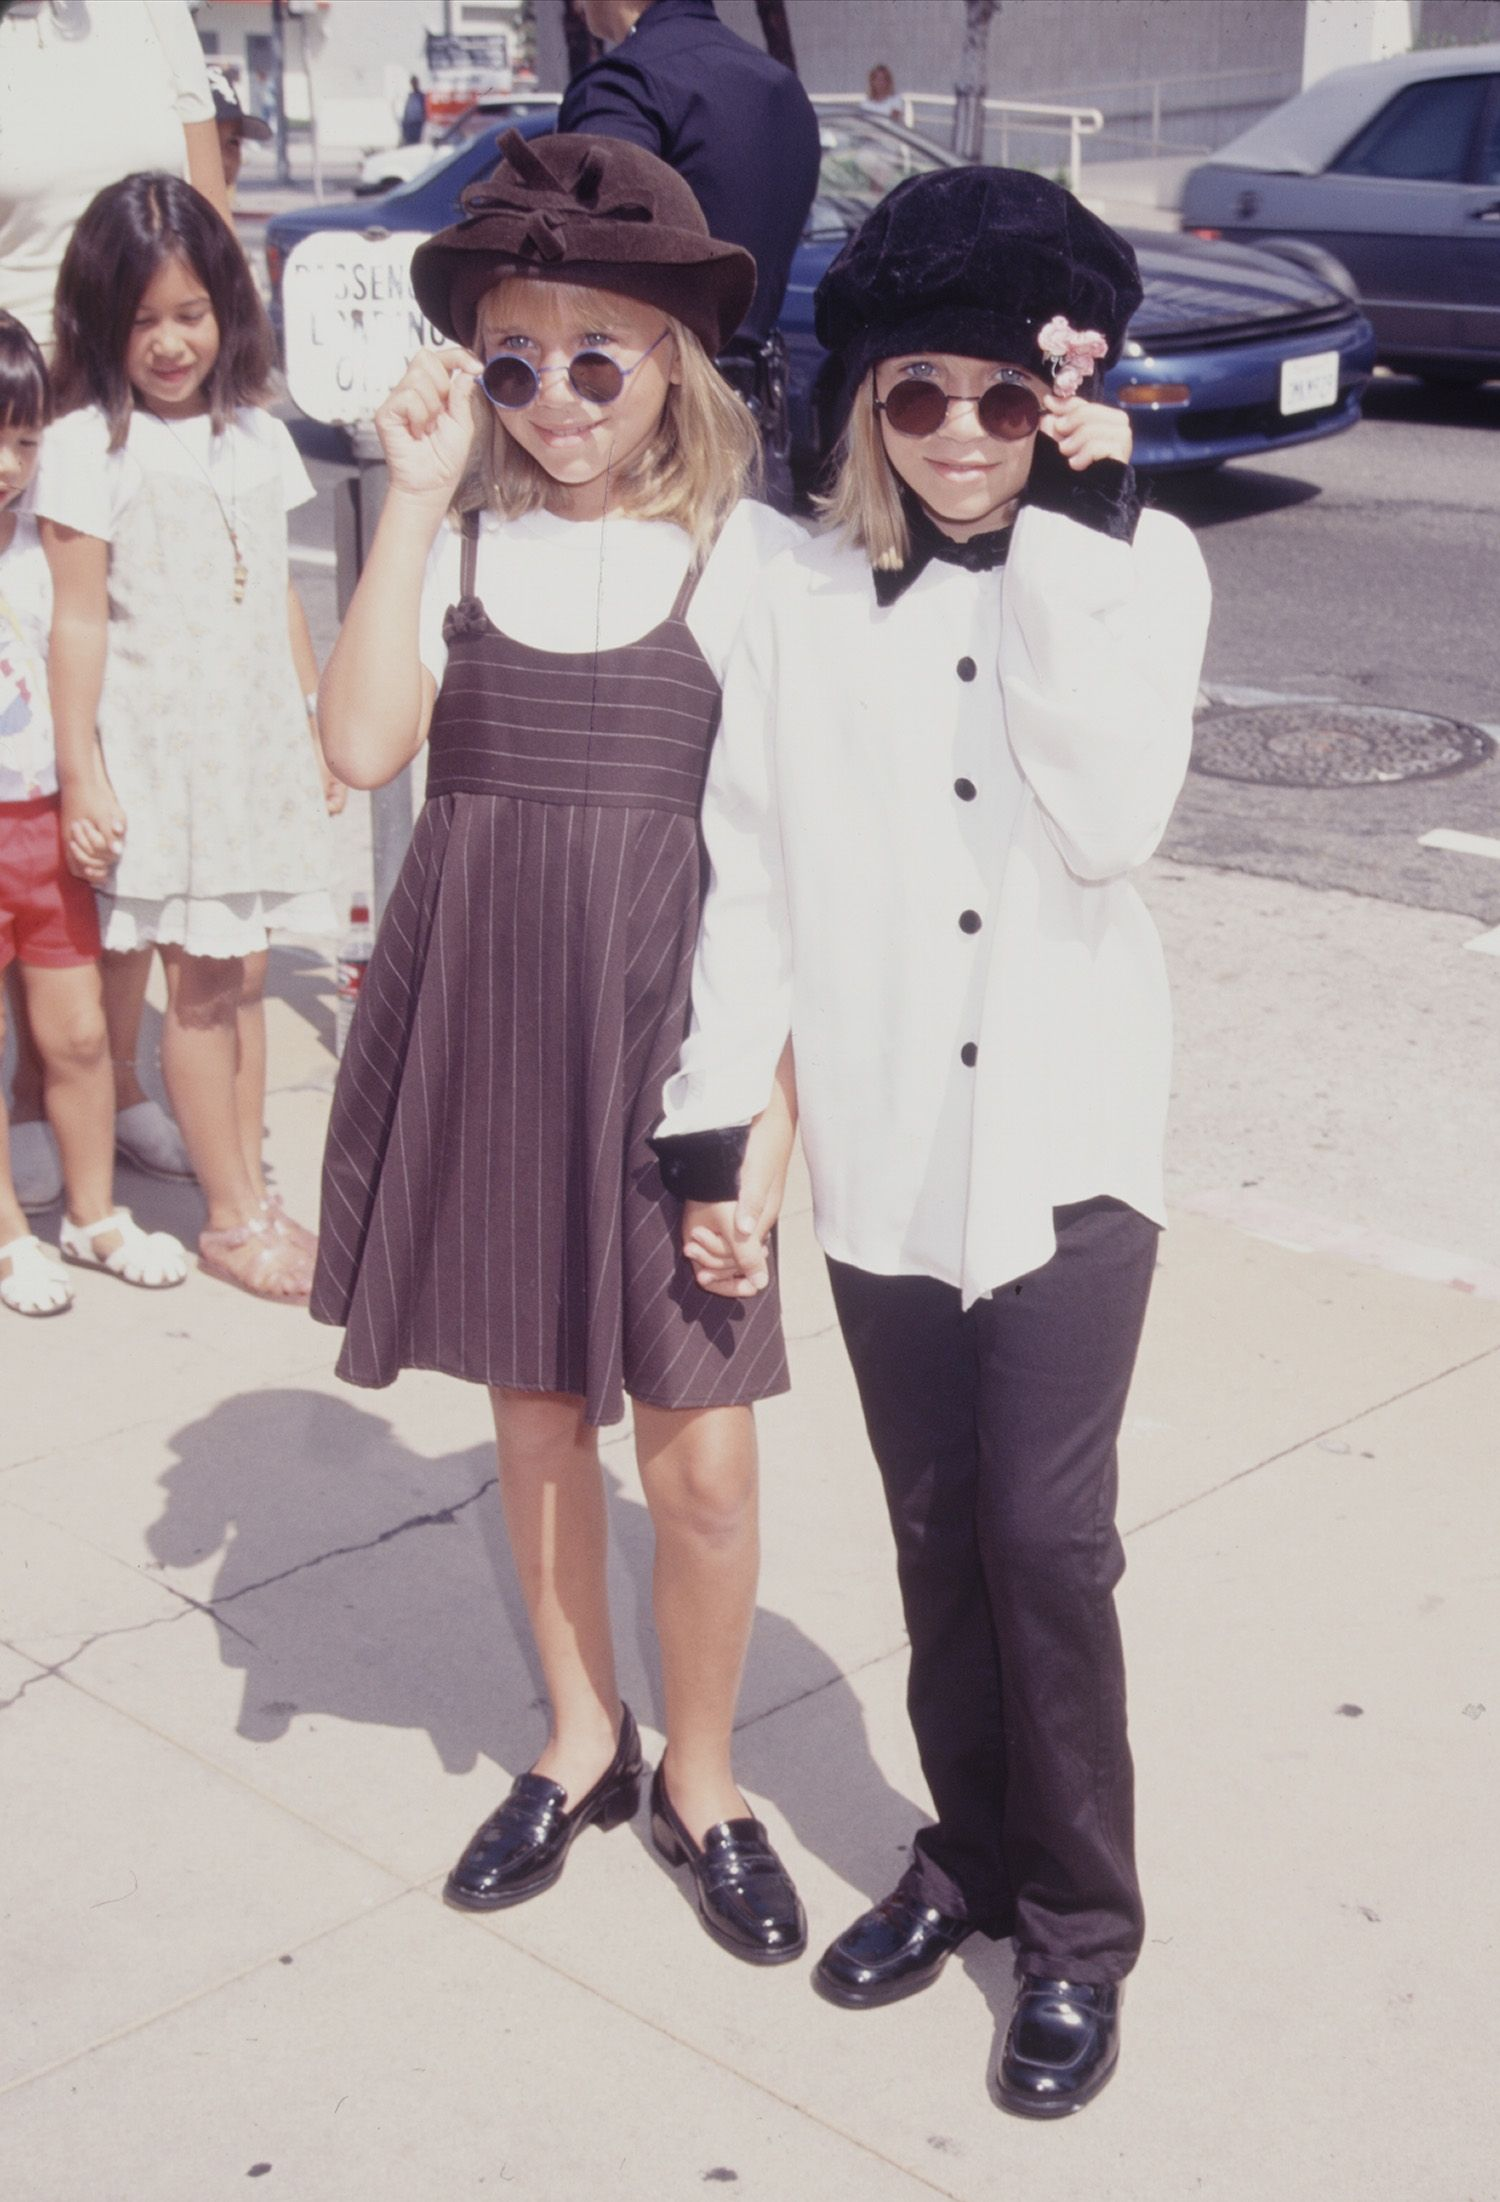 42 Photos Showing the Olsen Twins' Transformation - Mary